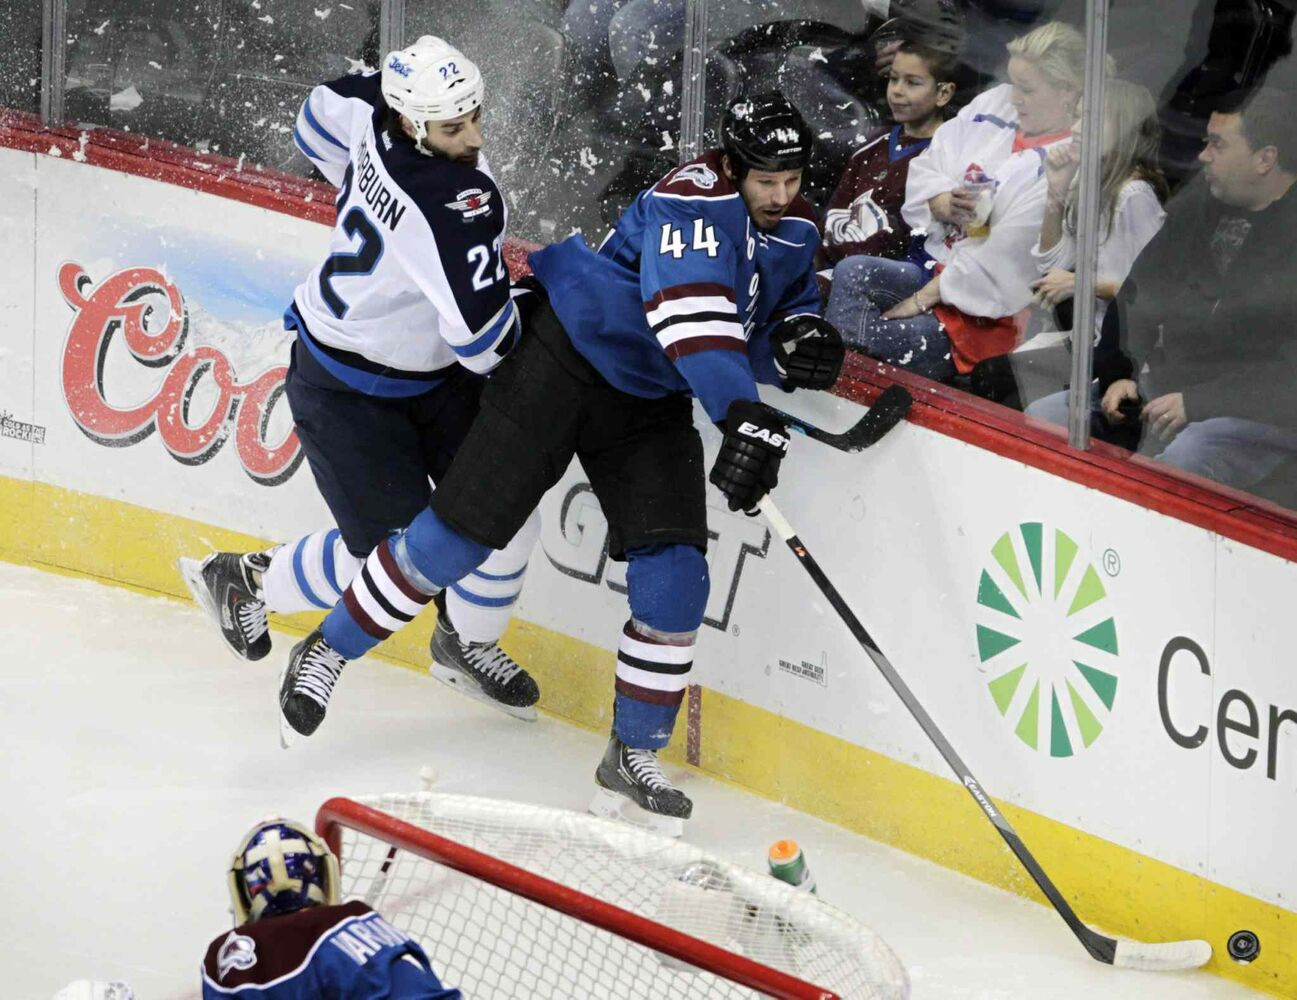 Winnipeg Jets winger Chris Thorburn (left) checks Colorado Avalanche defenceman Ryan Wilson during the first period.